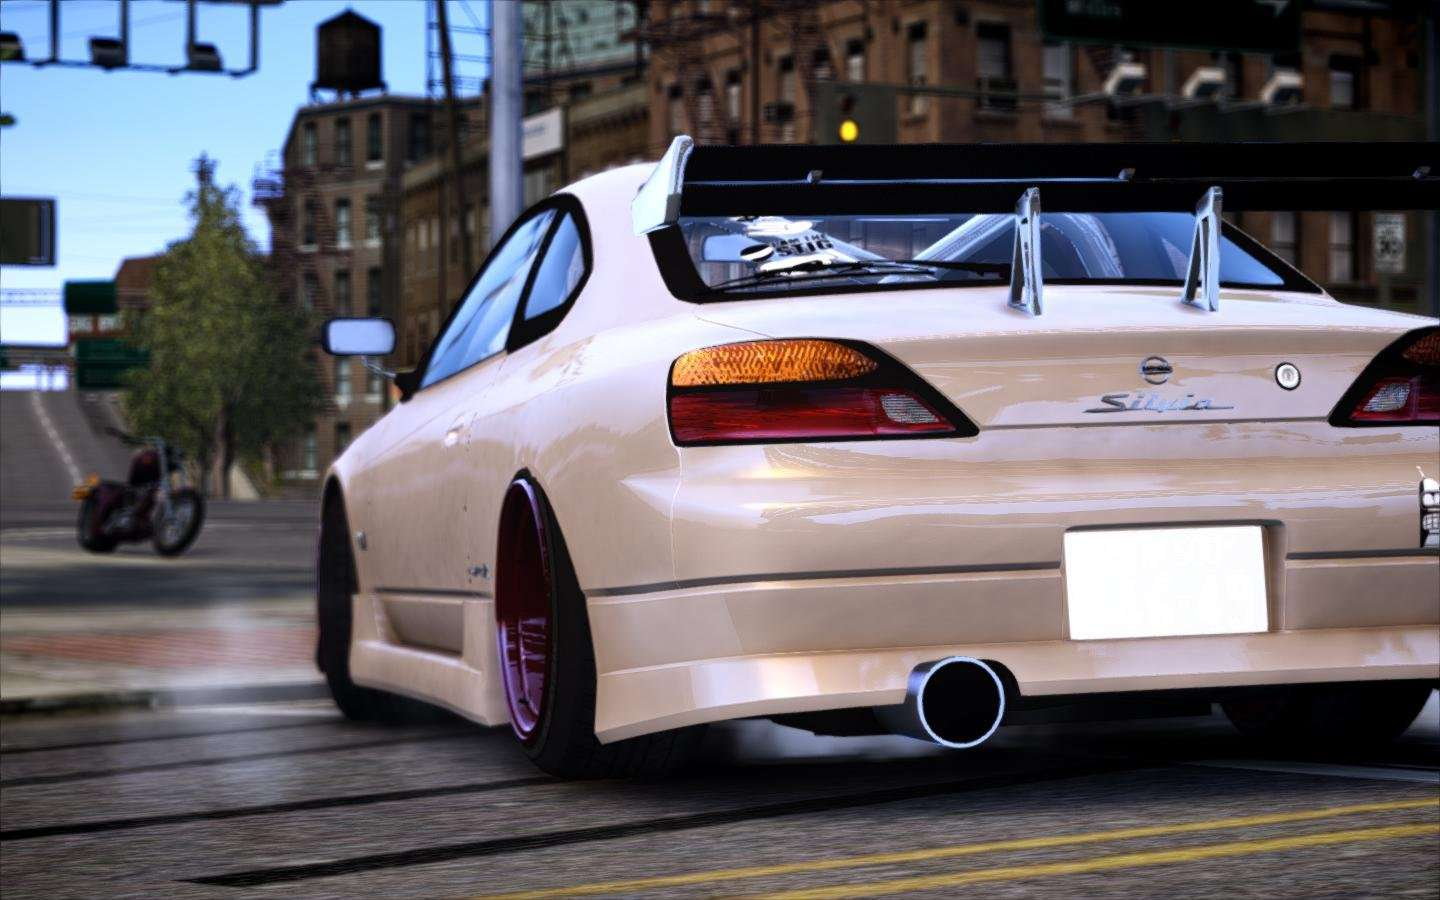 Buy Nissan Silvia S15 Front Lip for Aero Front Bumper | AusBody Works